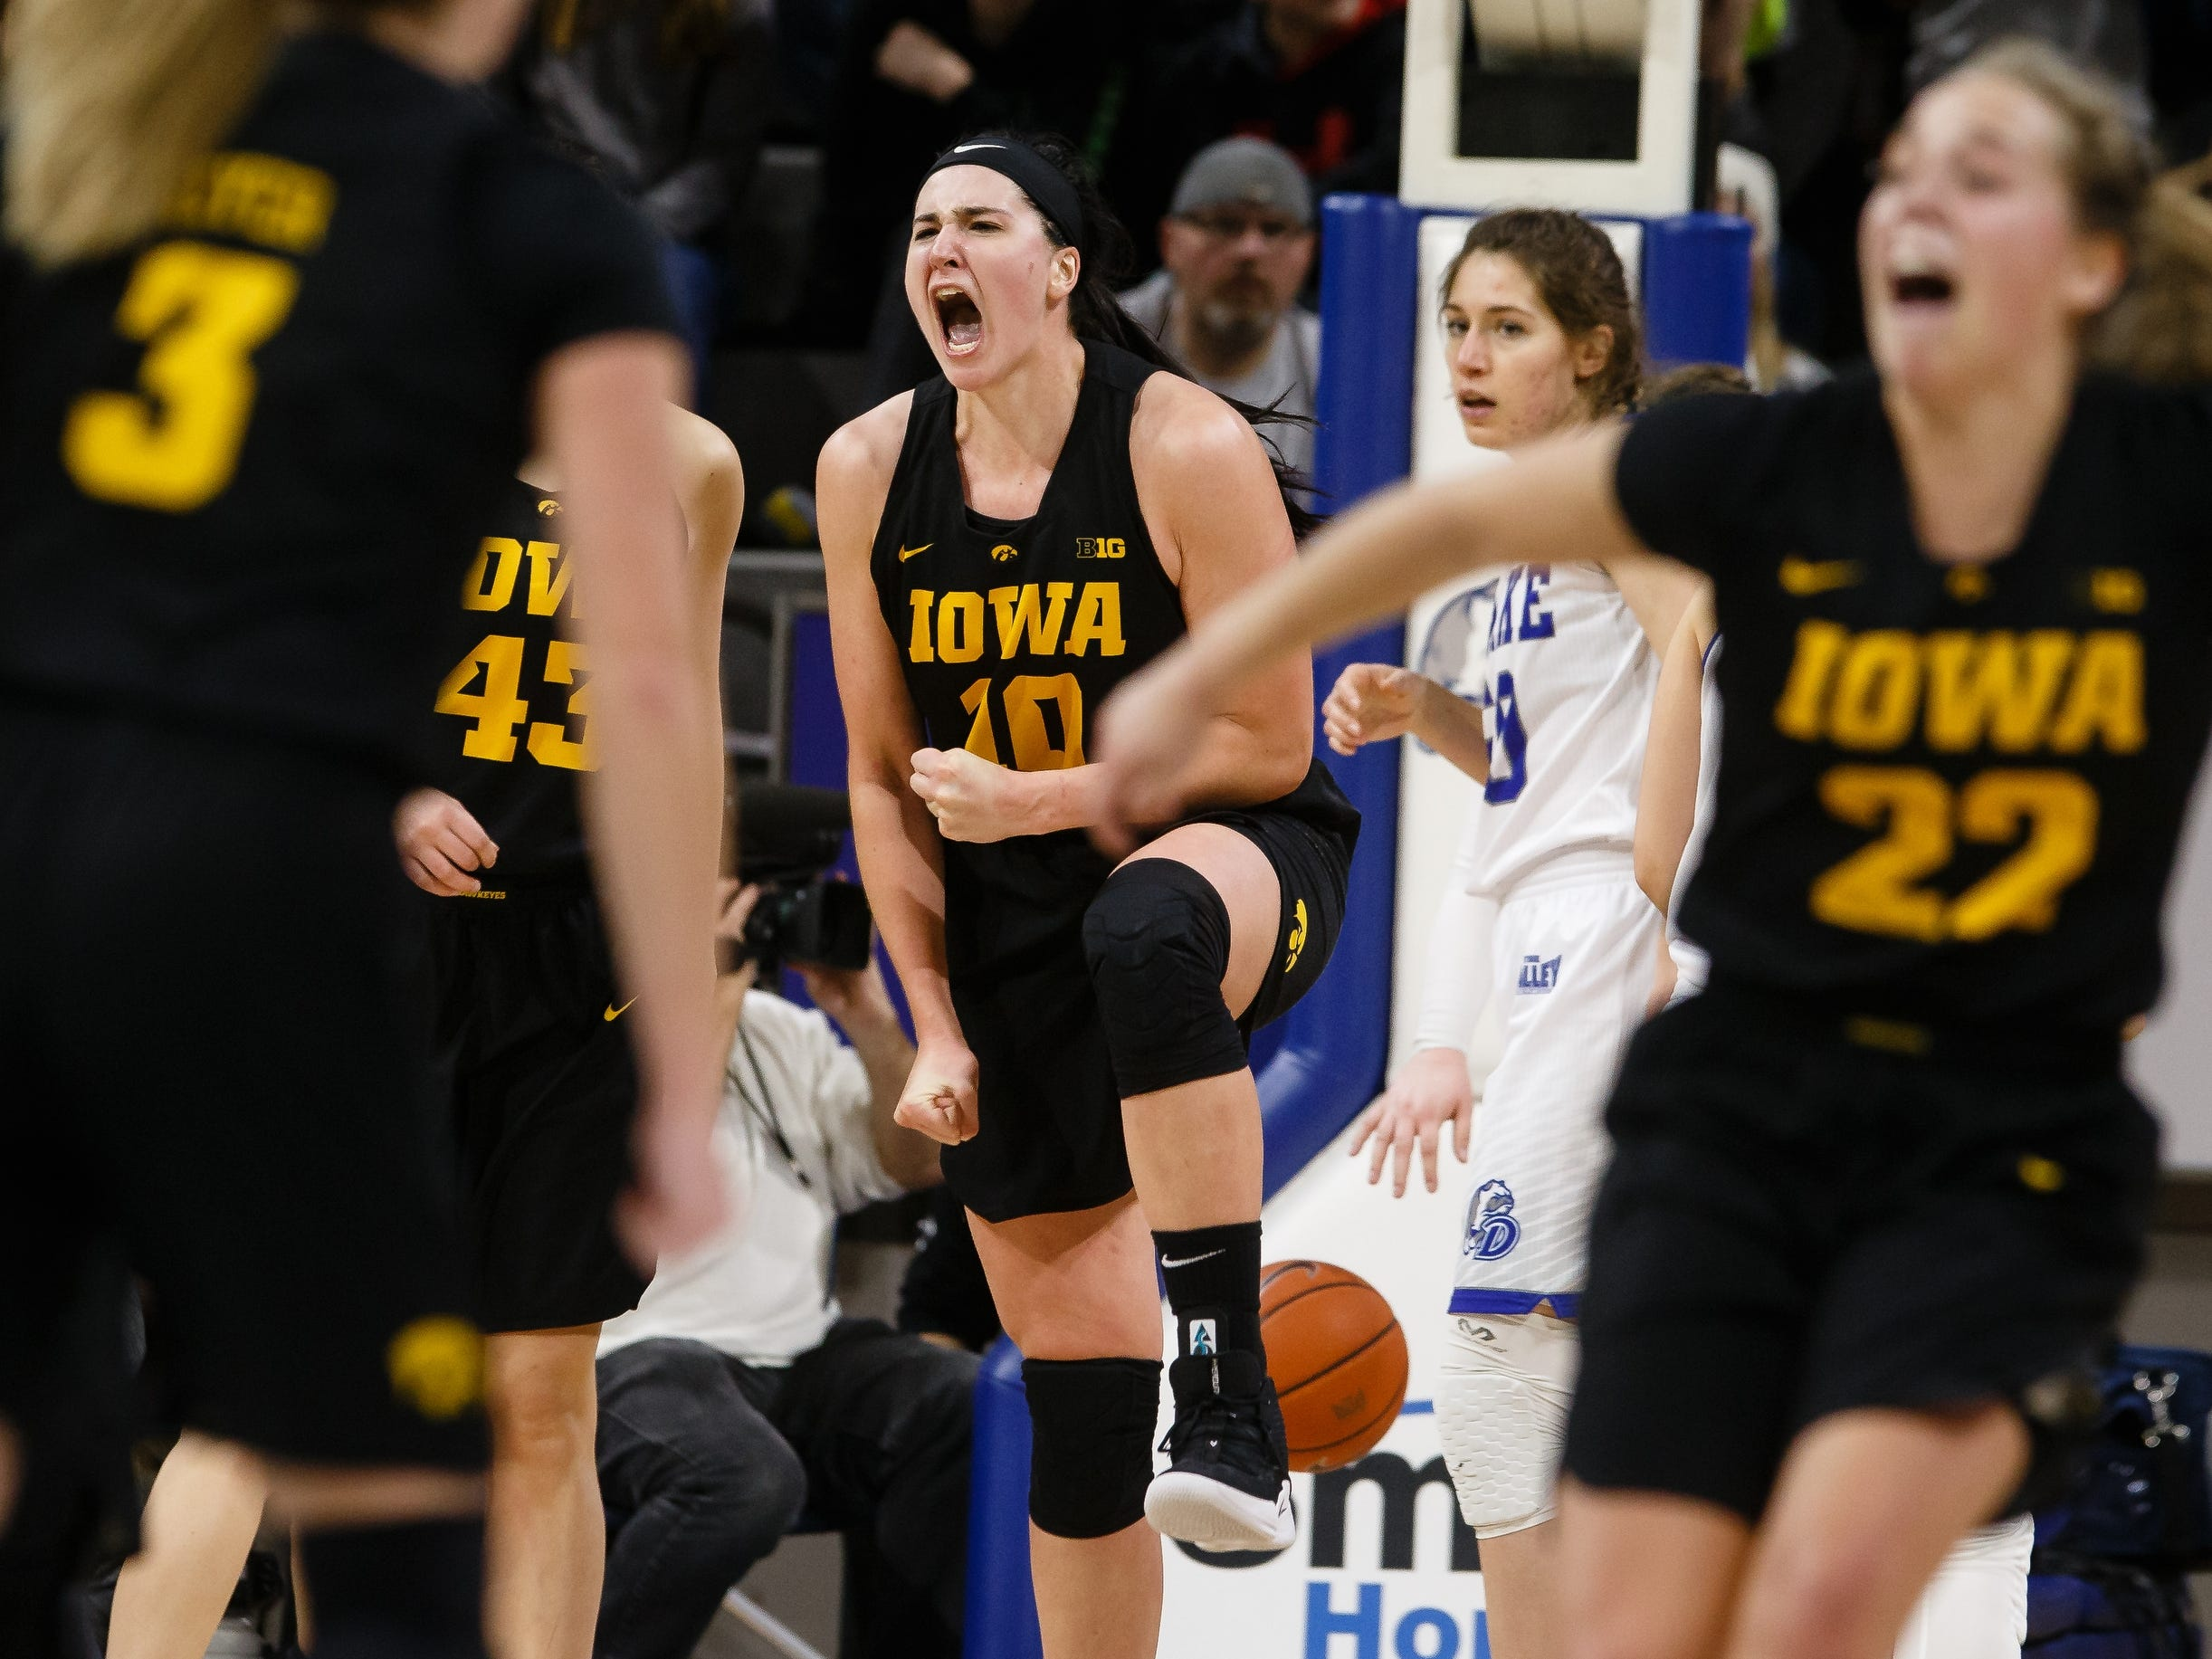 Iowa's Megan Gustafson (10) and Iowa's Kathleen Doyle (22) celebrate a basket during their basketball game on Friday, Dec. 21, 2018, in Des Moines. Iowa would go on to defeat Drake 91-82.